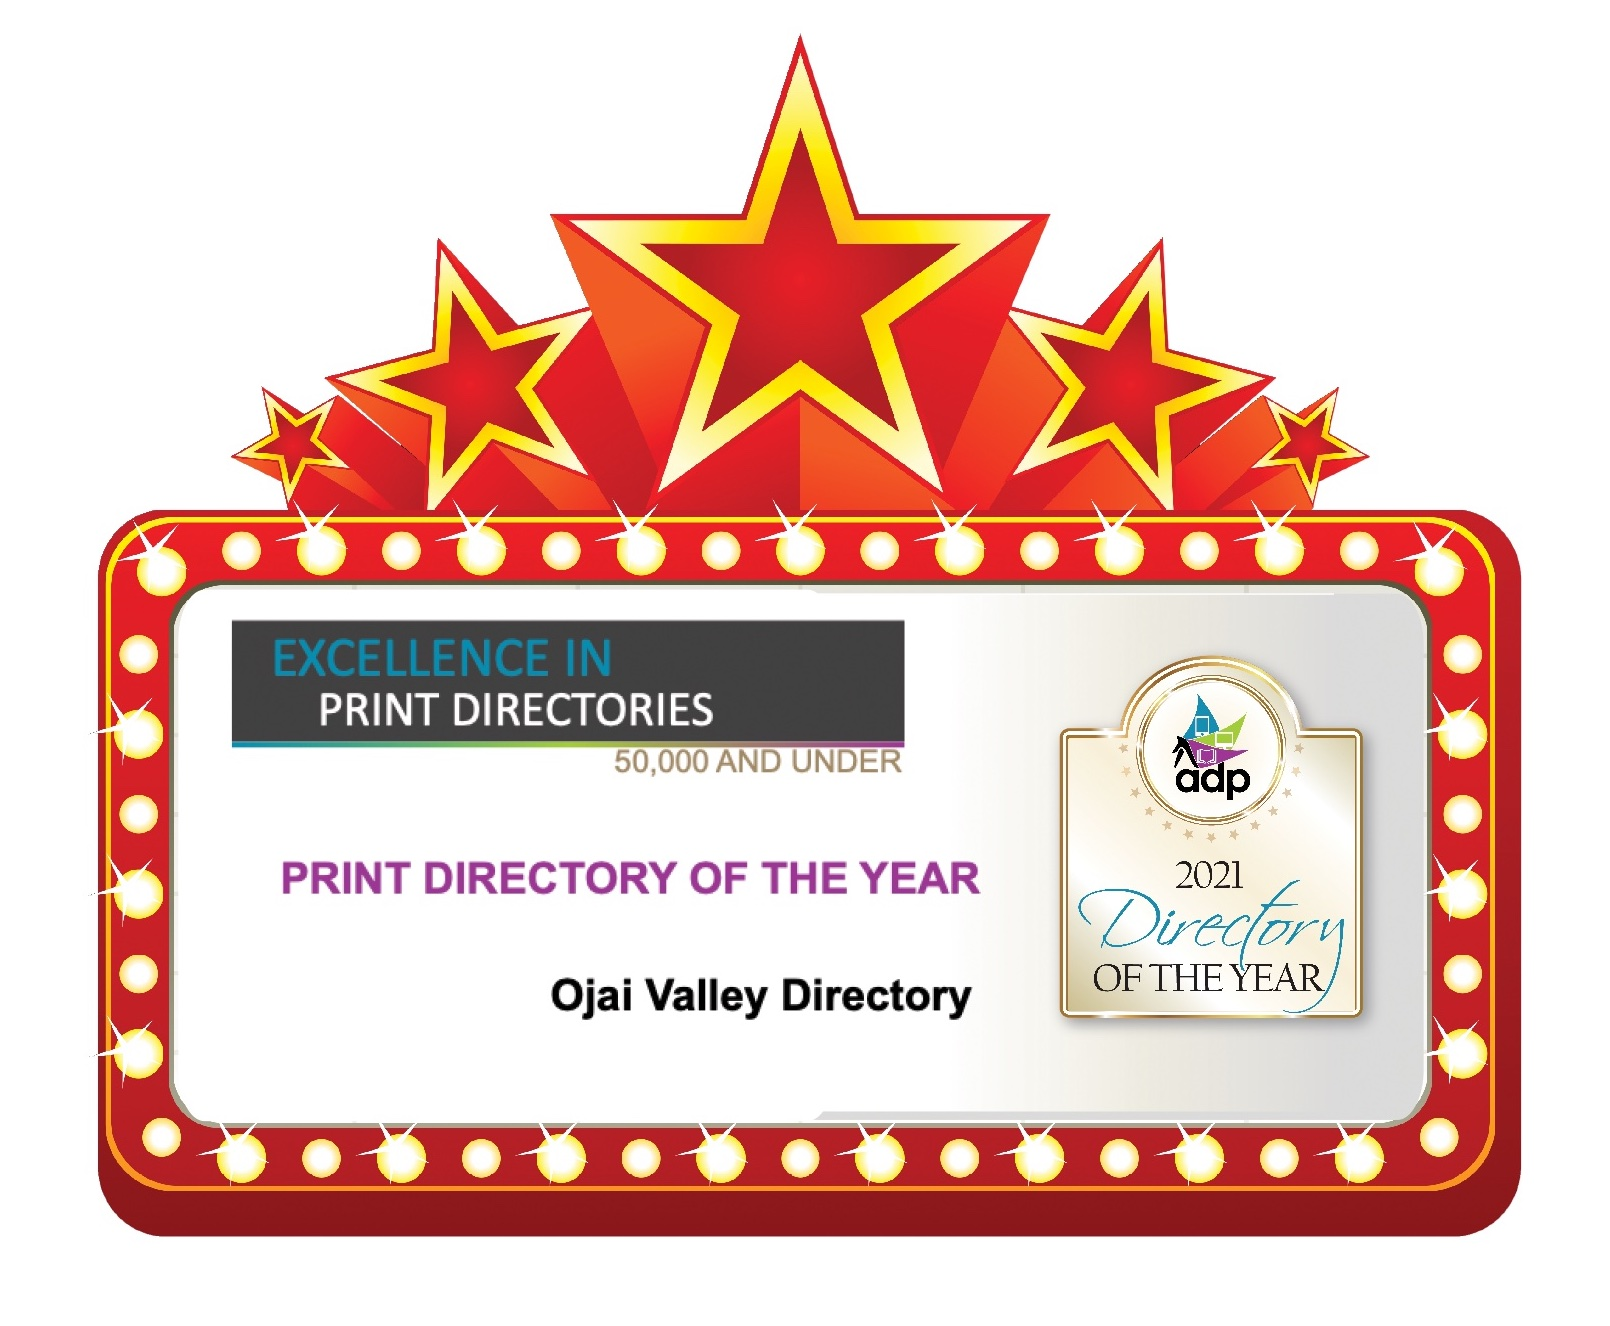 2021 Directory of the Year – Ojai Valley Directory